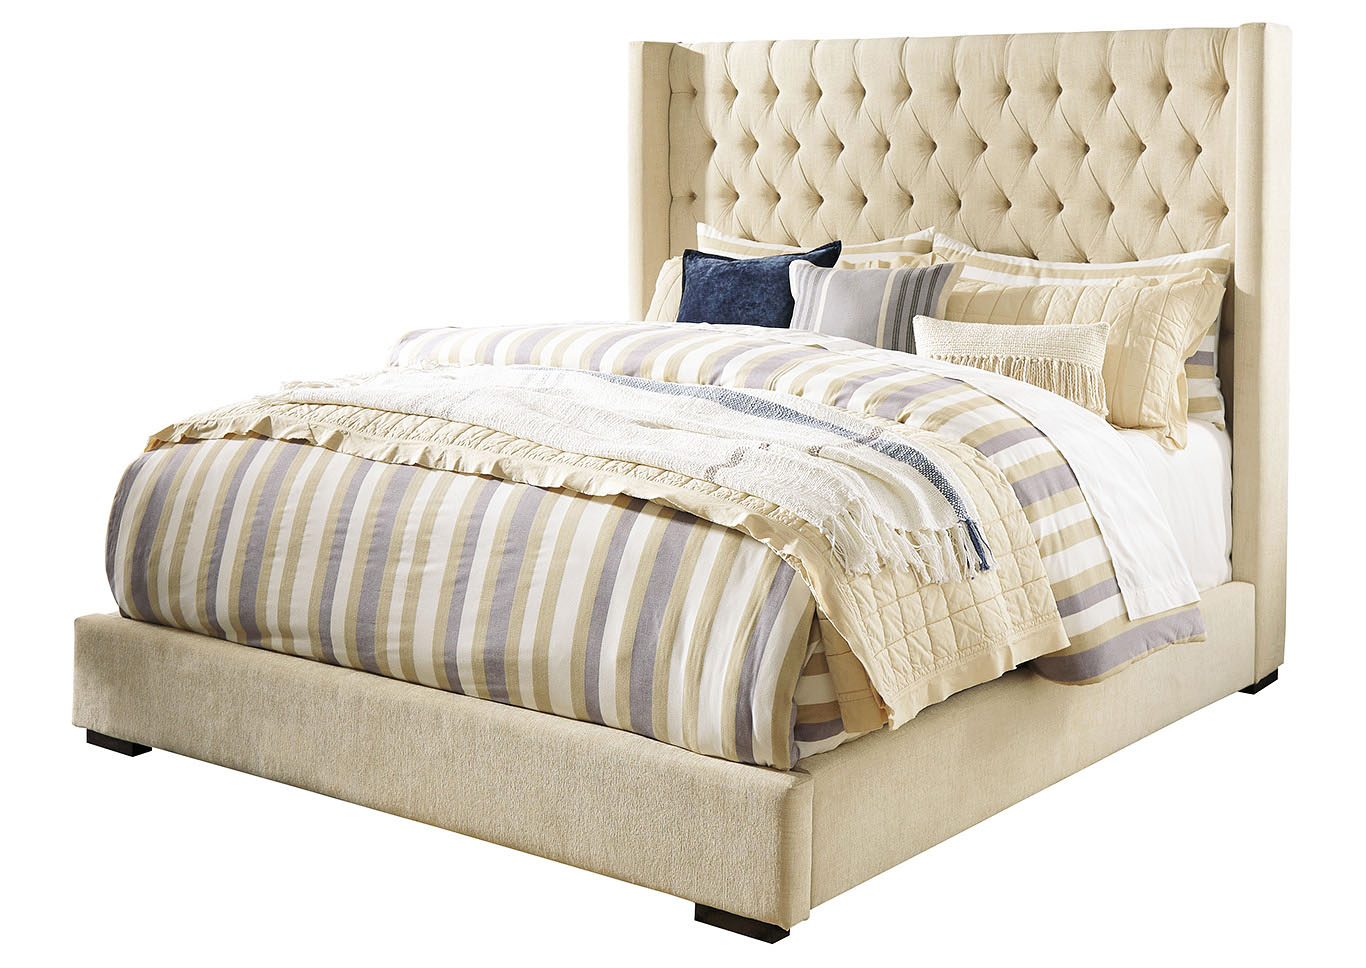 Norrister Beige Upholstered California King Platform Bed,Signature Design By Ashley